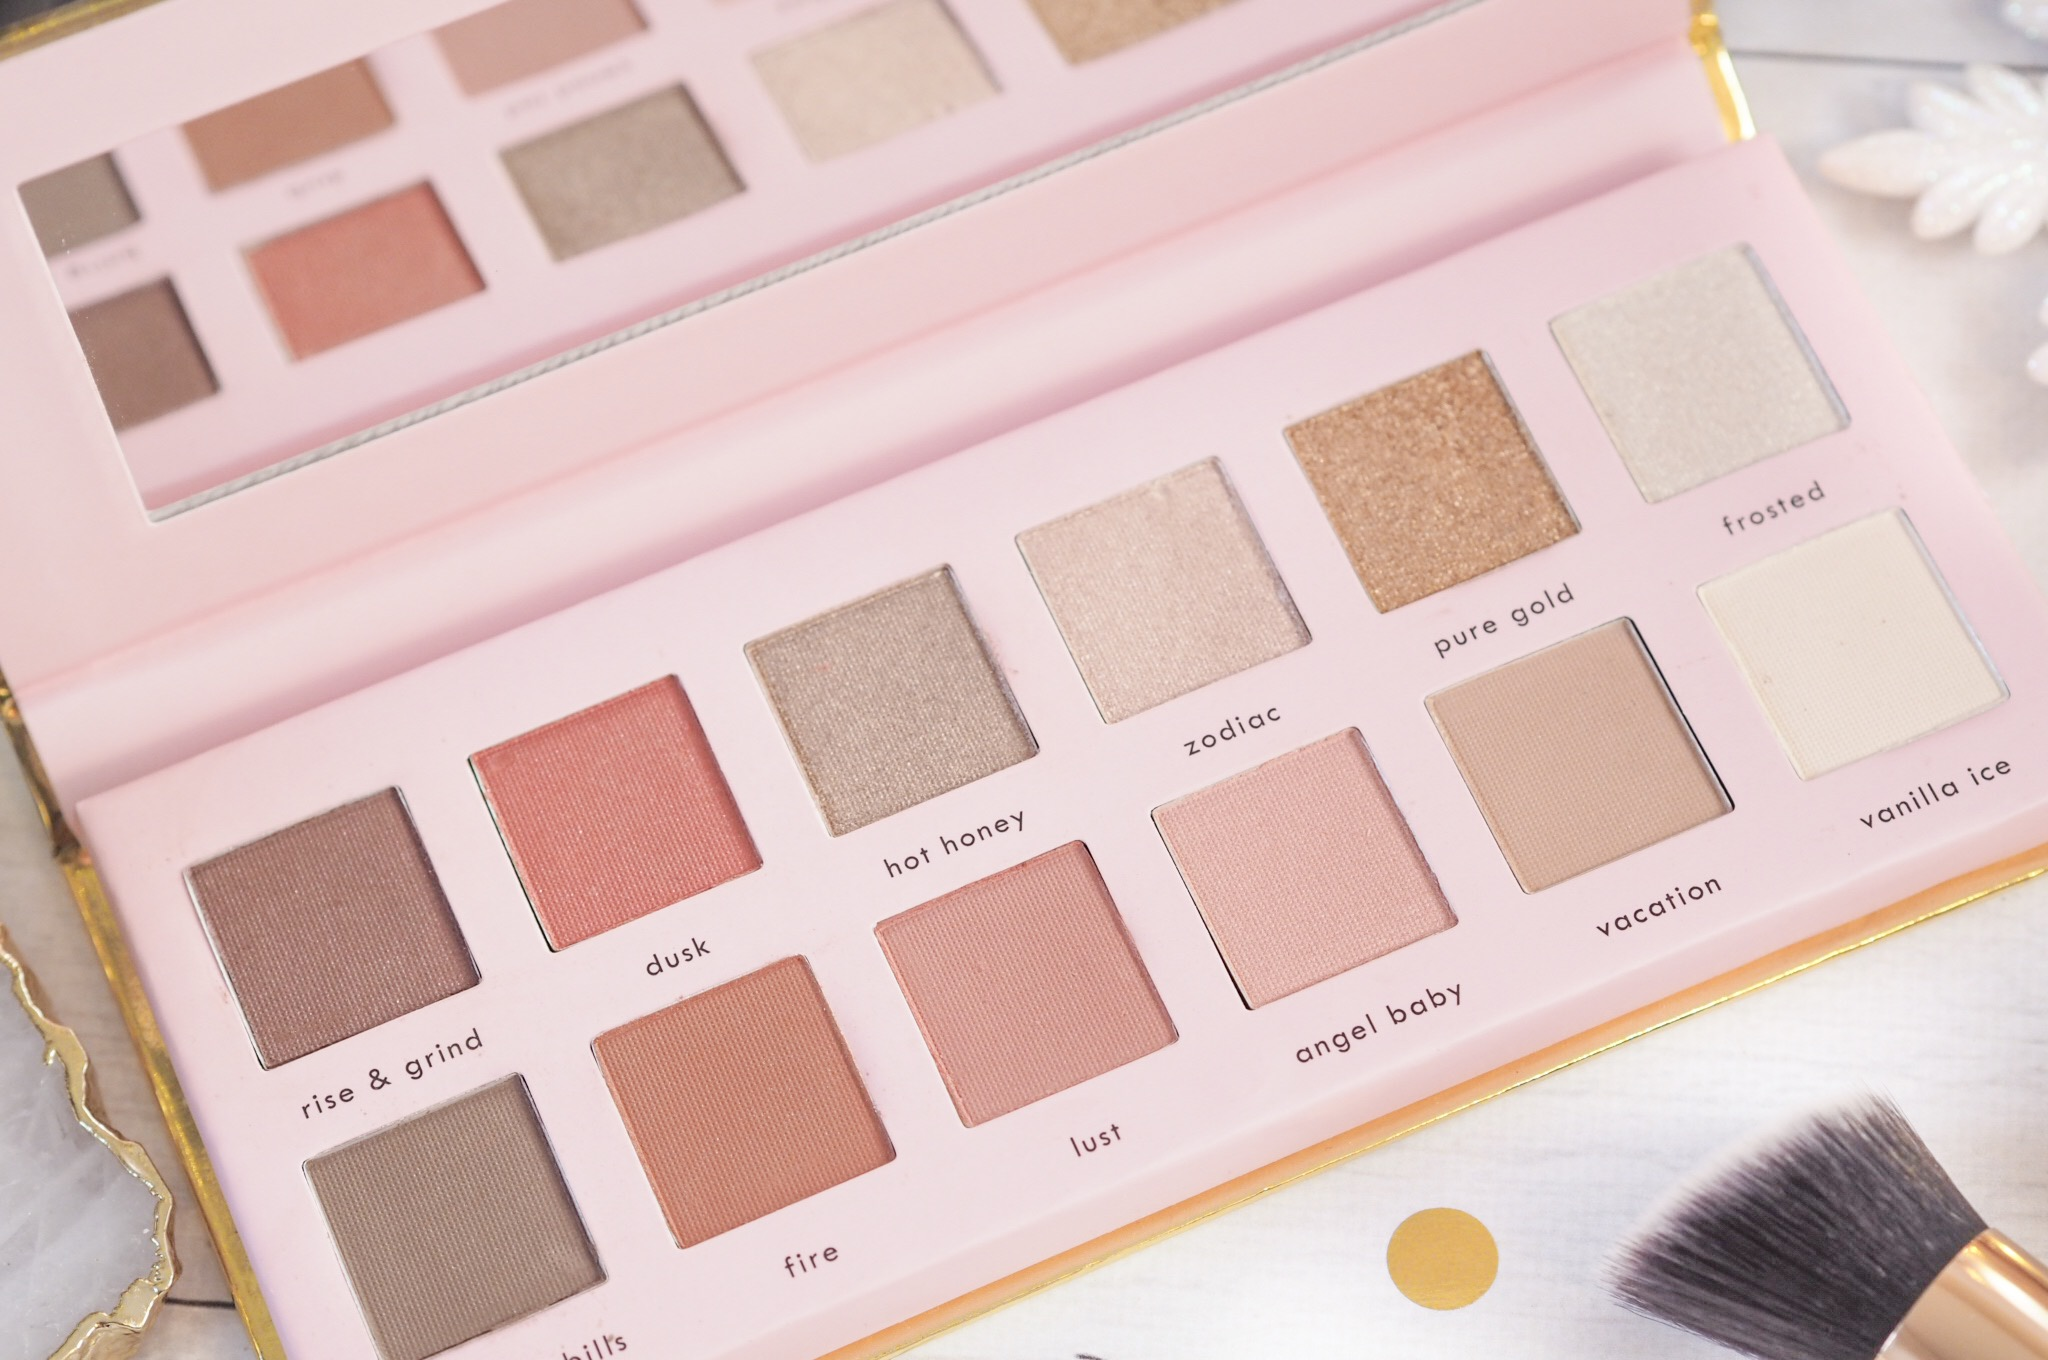 Skinnydip Solid Gold Baby Palette